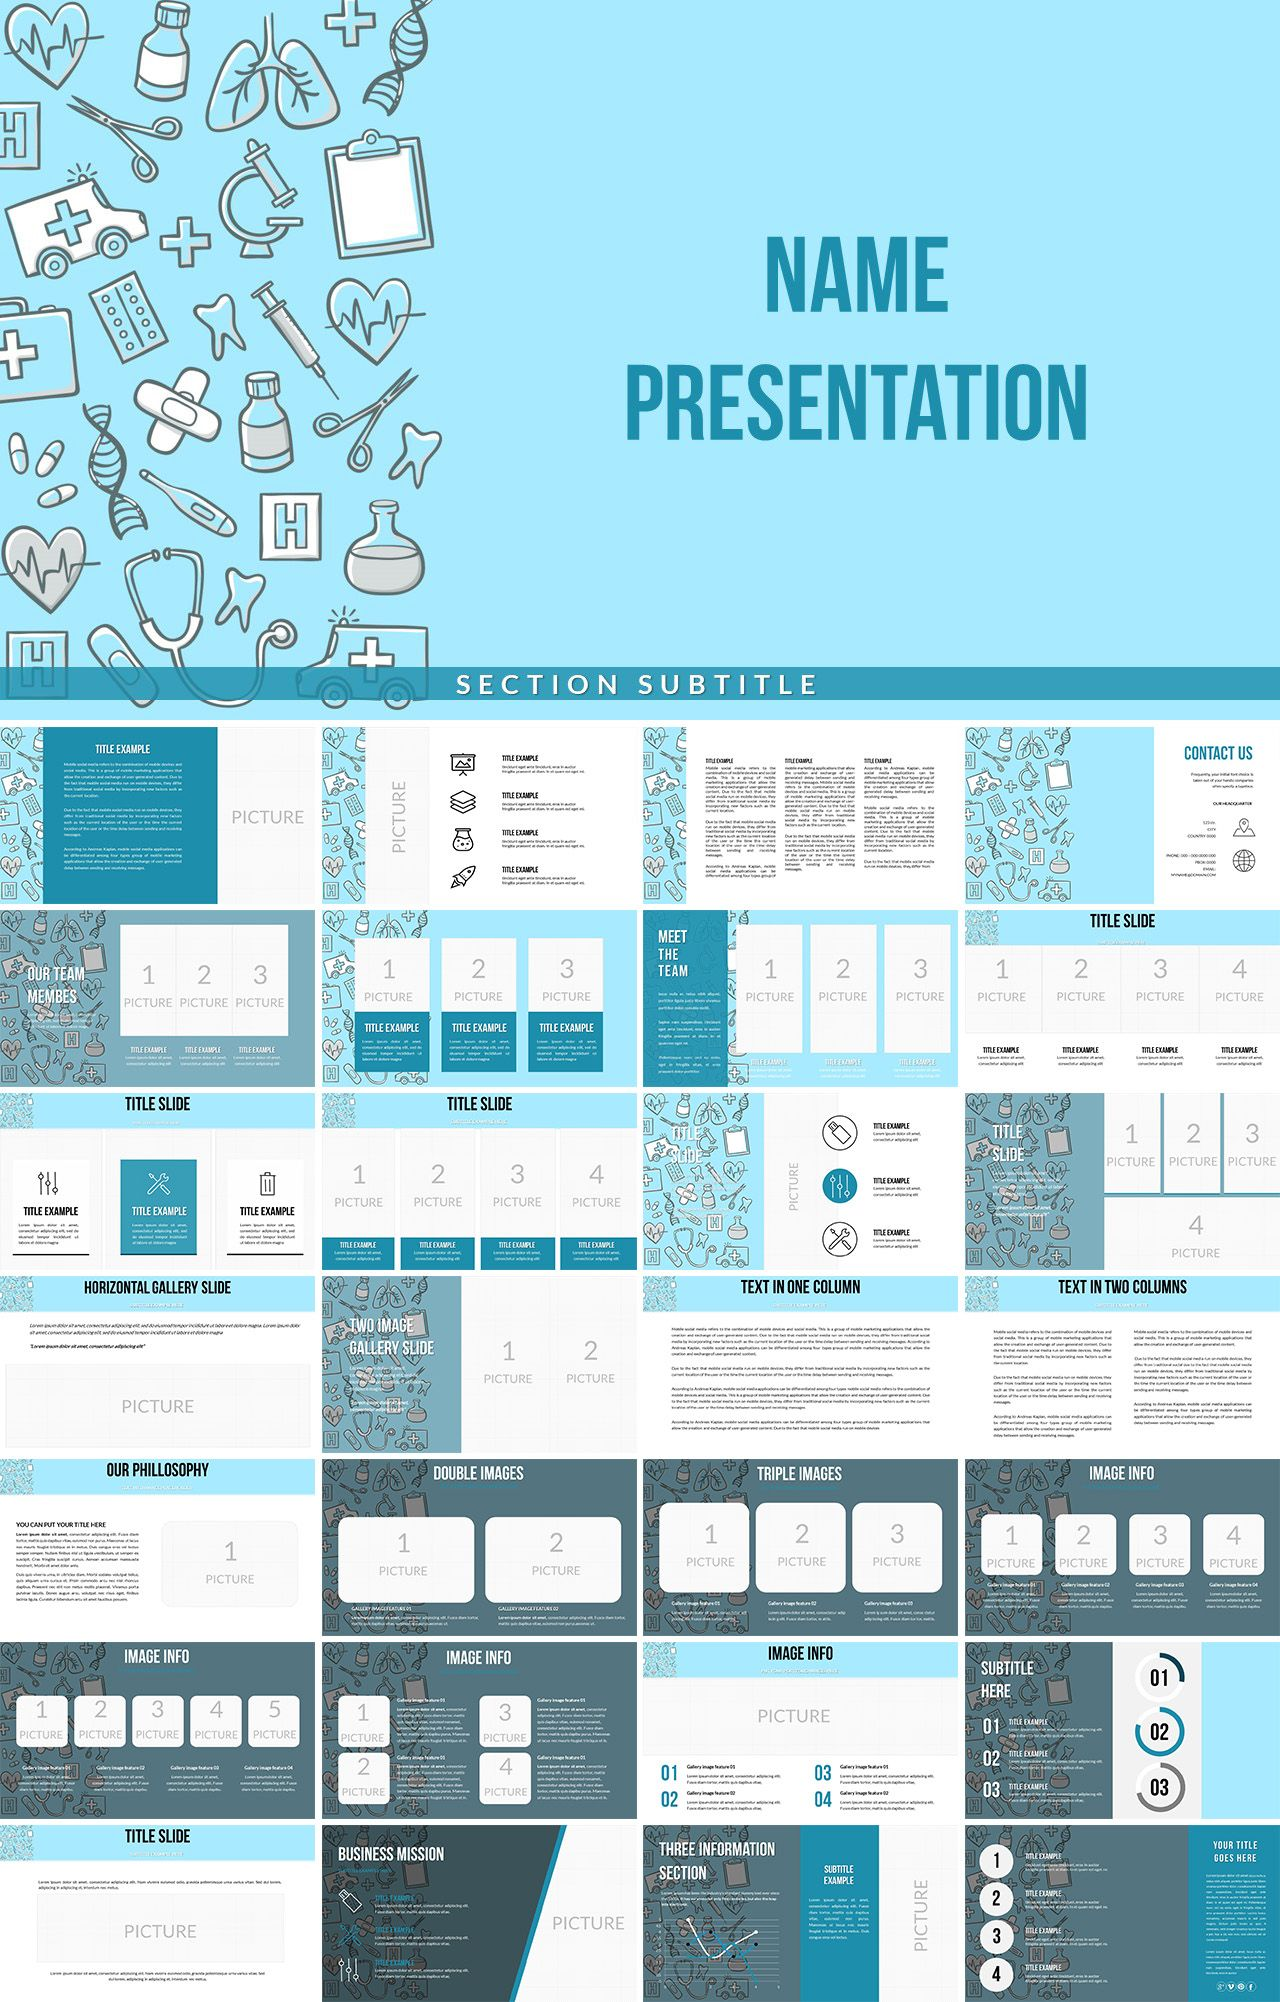 Medical Background Powerpoint Template Imaginelayout Com Background Powerpoint Medical Background Powerpoint Medical Background